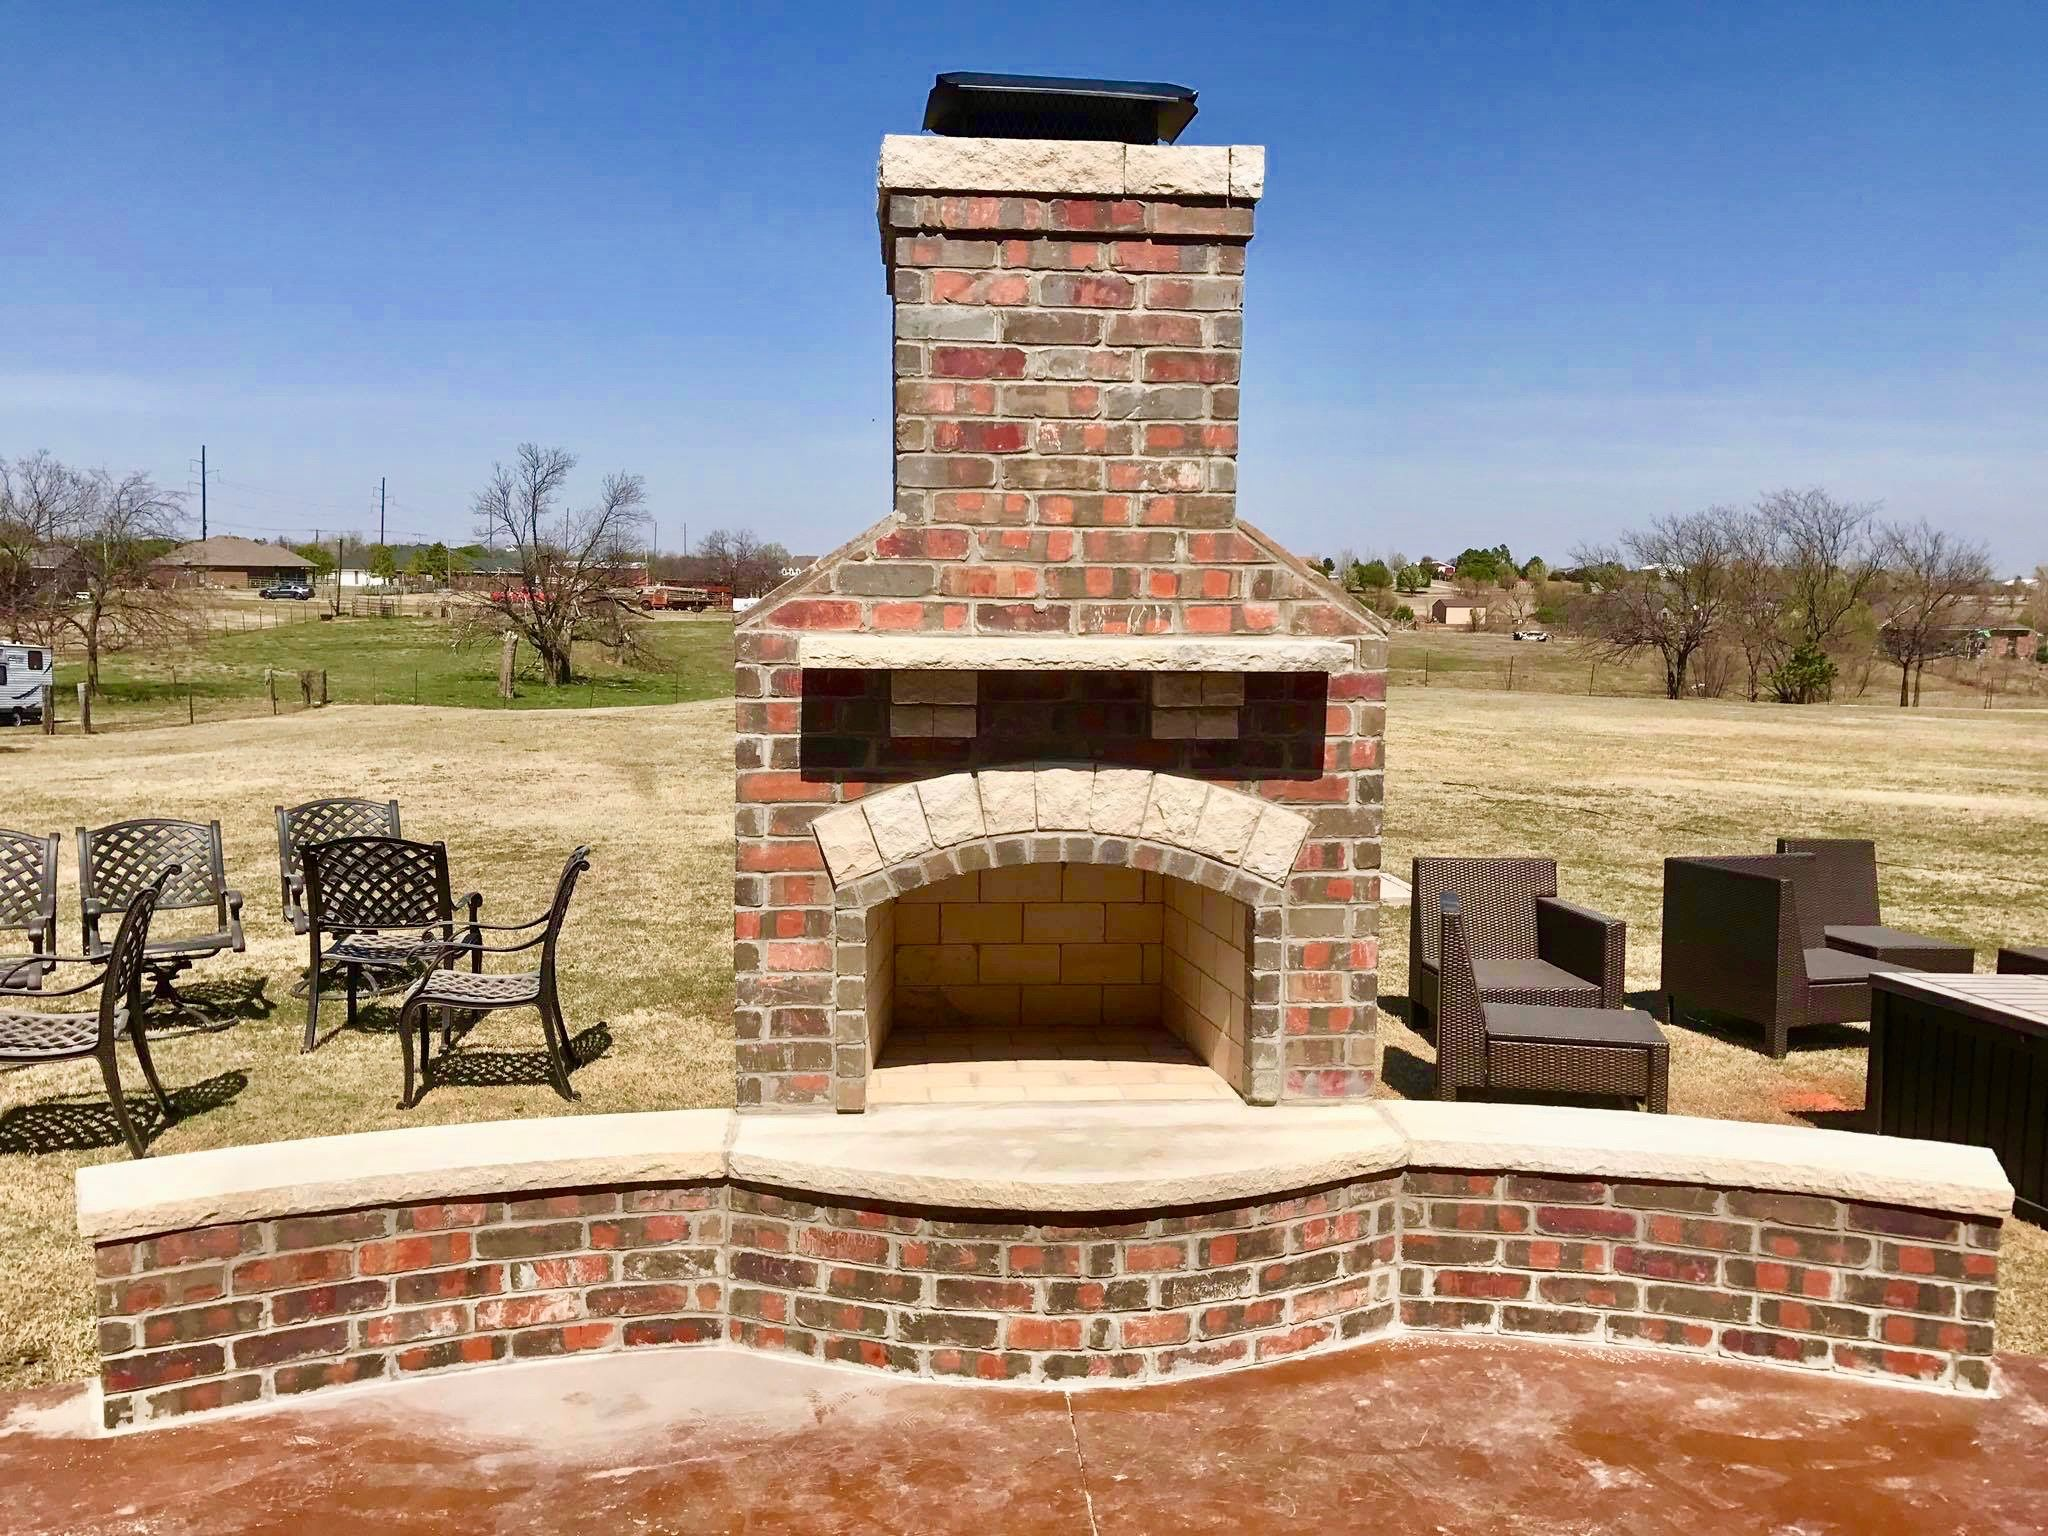 Pin by PMHOKC.com on Custom Outdoor Fireplaces | Fireplace ... on Simple Outdoor Brick Fireplace id=60766